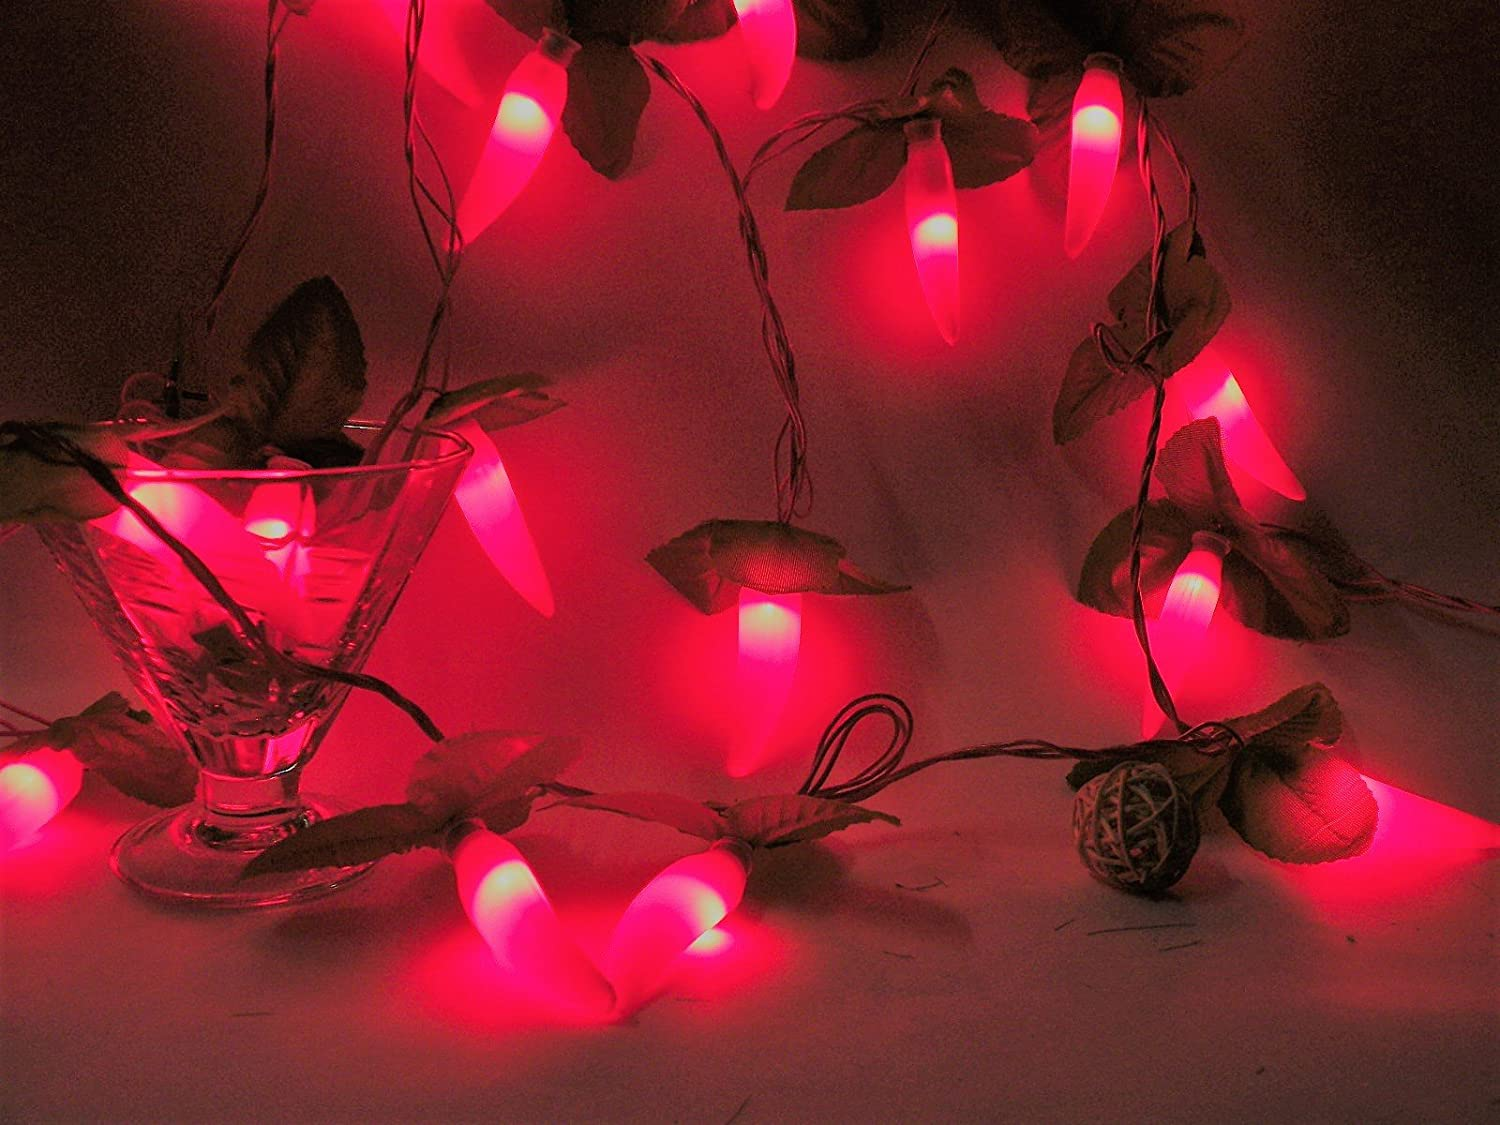 Glimmer Lightings San Jose Tulsa Mall Mall Red Mirchi Chillies String for Light 9 Meters